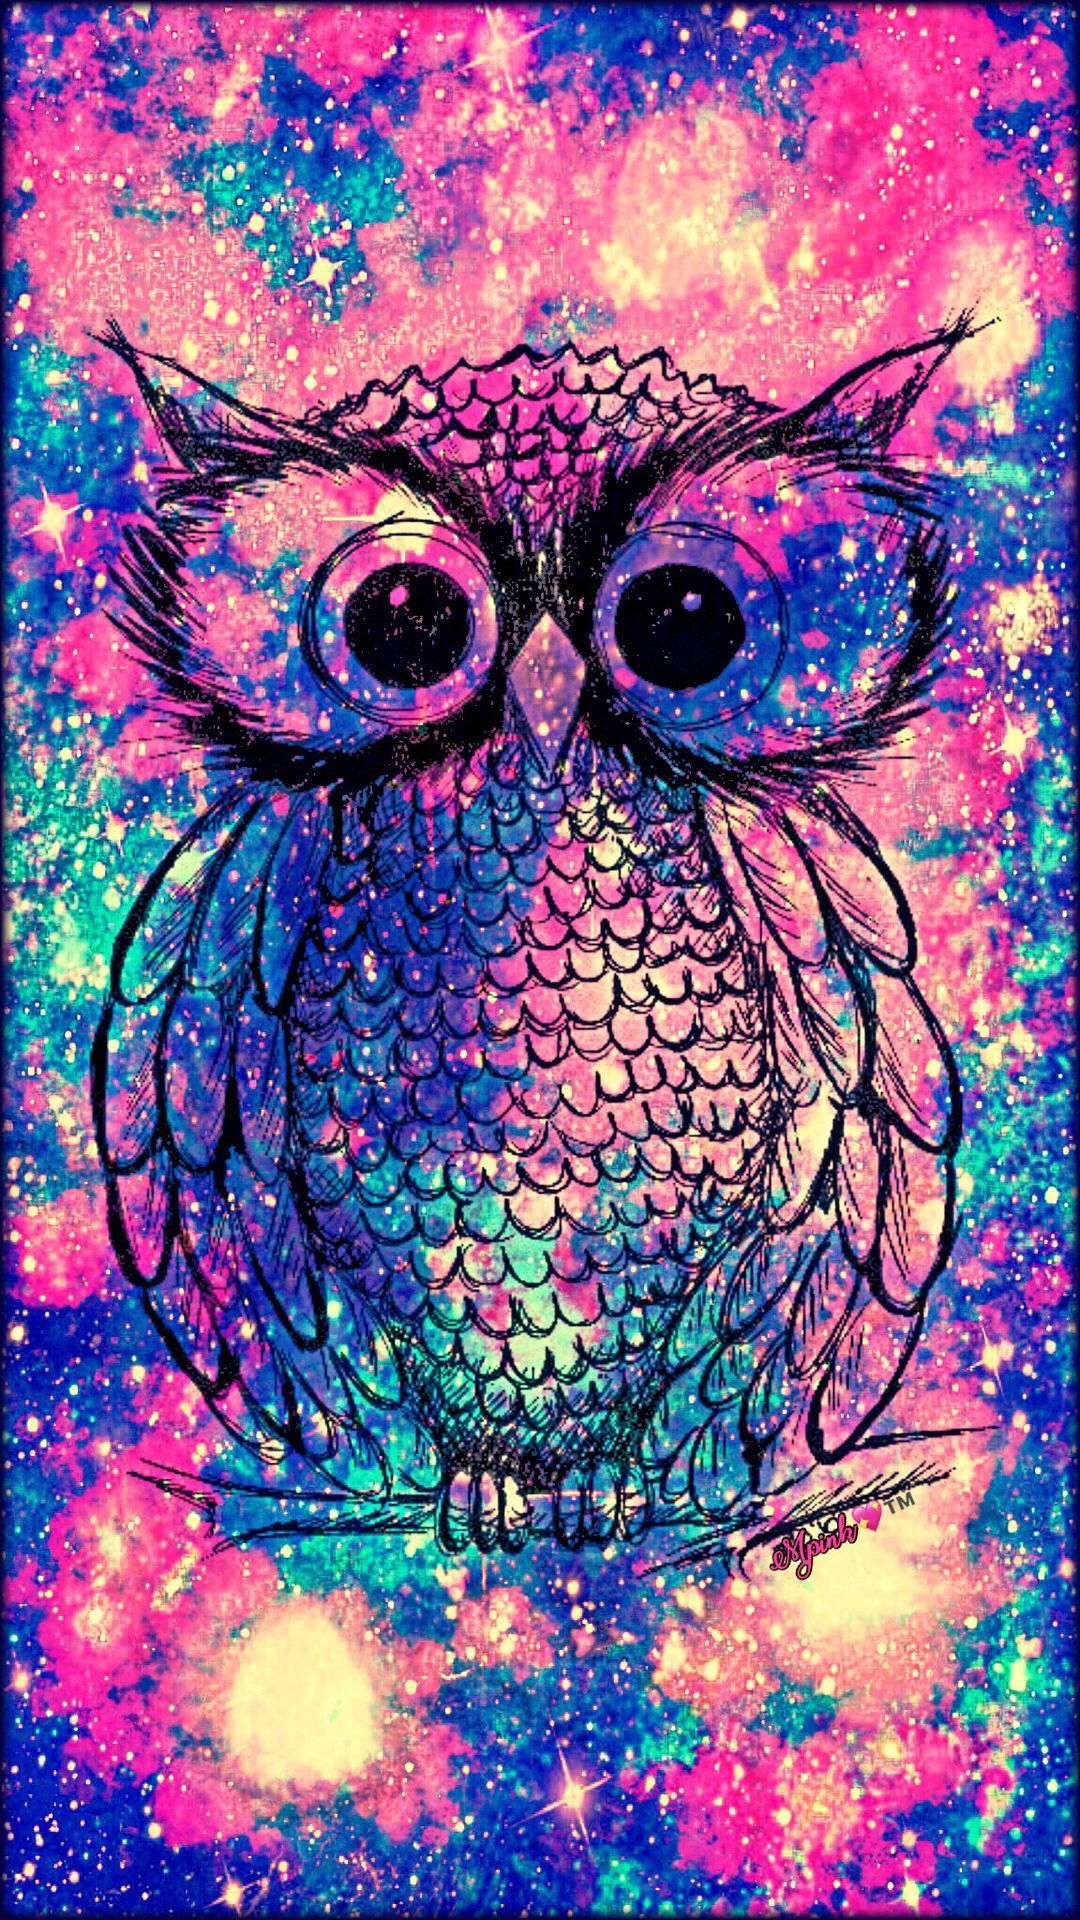 1080x1920 50+ Girly Owl Wallpapers - Download at WallpaperBro